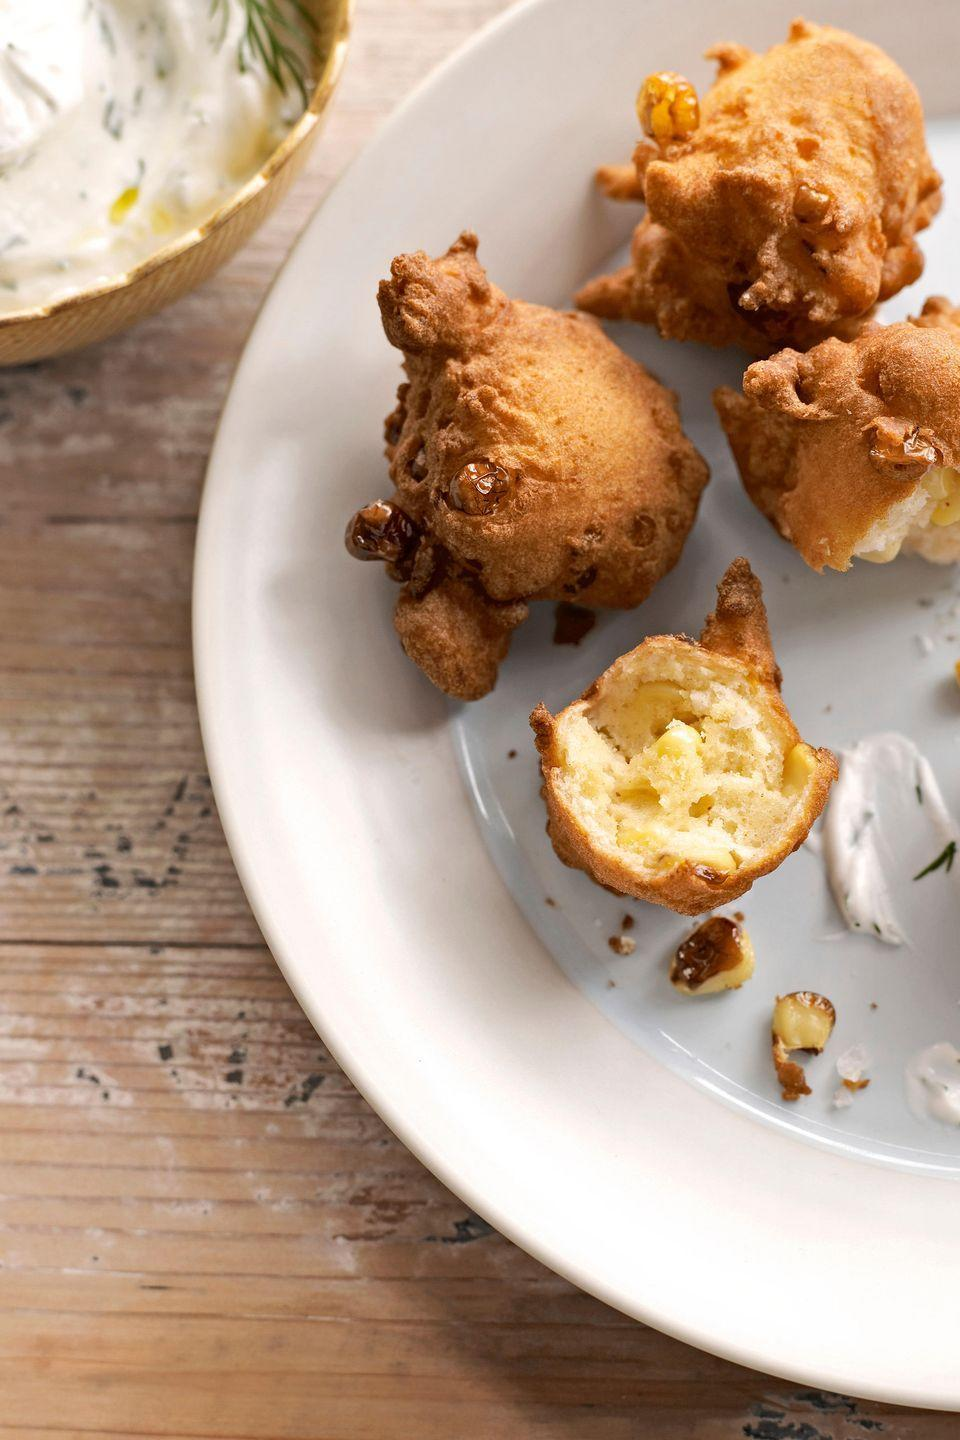 """<p>Made with everyday pantry staples and kernels cut straight from the cob, these airy fritters will get eaten up as fast as you can fry them. </p><p><strong><a href=""""https://www.countryliving.com/food-drinks/recipes/a2911/corn-fritters-recipe/"""" rel=""""nofollow noopener"""" target=""""_blank"""" data-ylk=""""slk:Get the recipe"""" class=""""link rapid-noclick-resp"""">Get the recipe</a>.</strong></p>"""